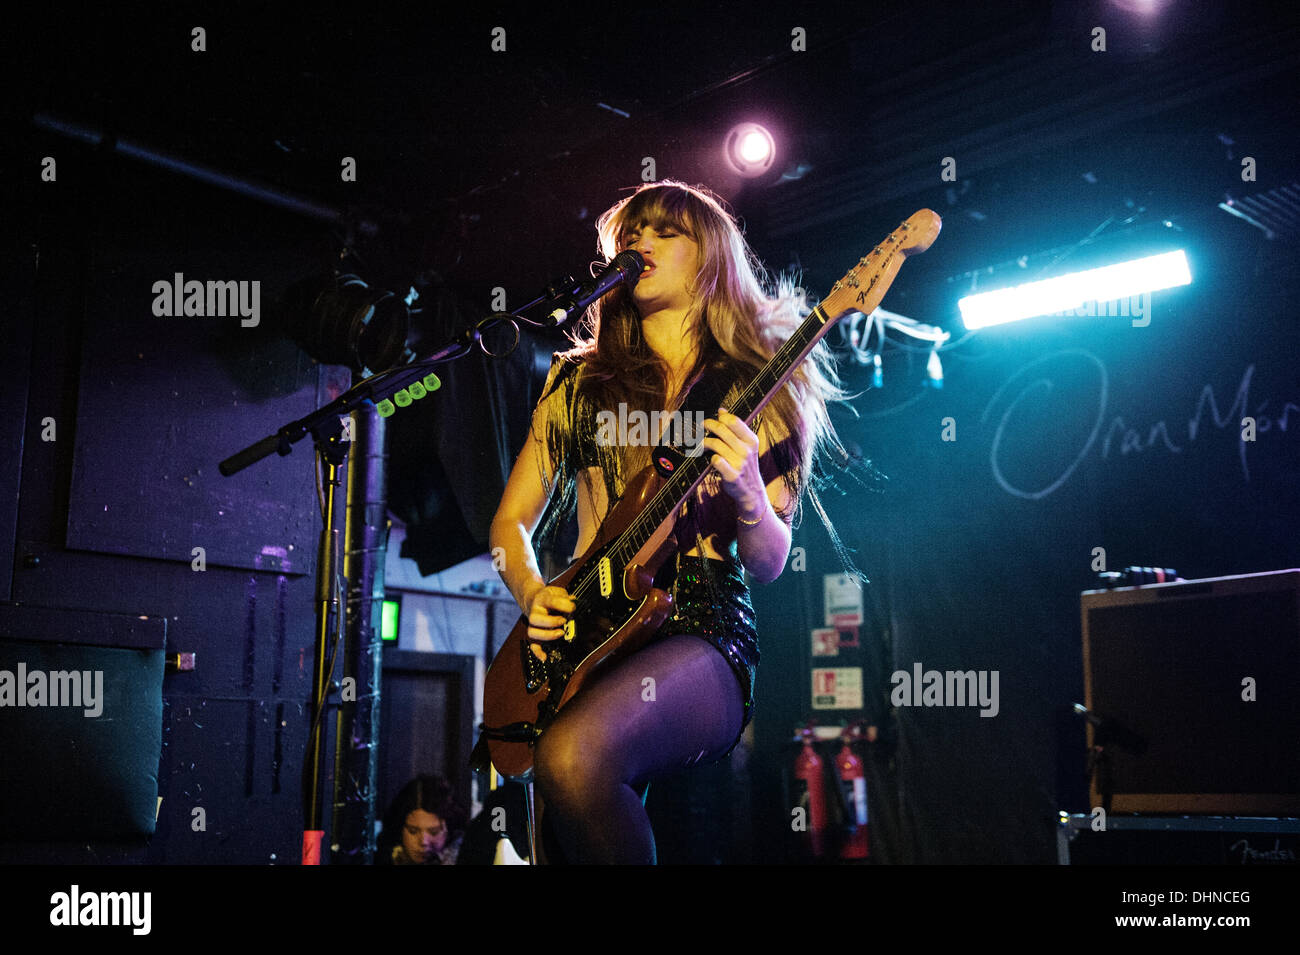 Glasgow, Scotland, UK. 12th November 2013. Lindsey Troy of Deap Vally performs at Oran Mor in Glasgow, Scotland, - Stock Image